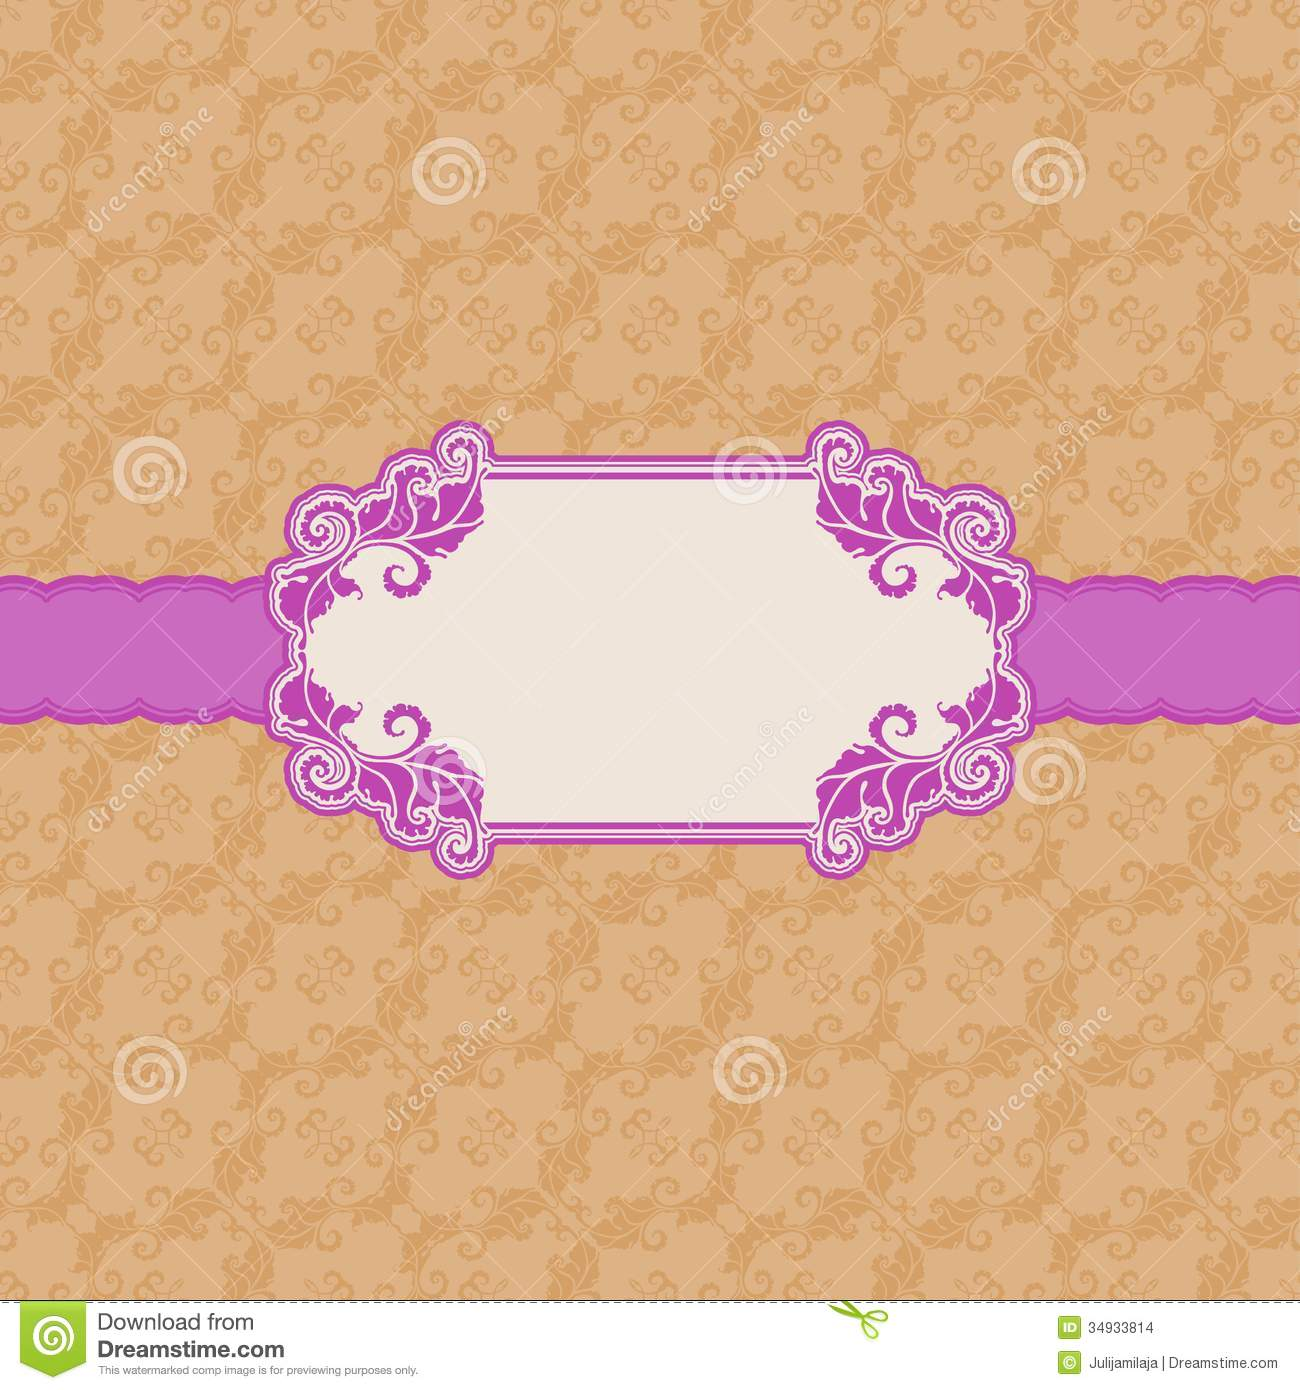 Template frame design for greeting card stock vector template frame design for greeting card kristyandbryce Choice Image